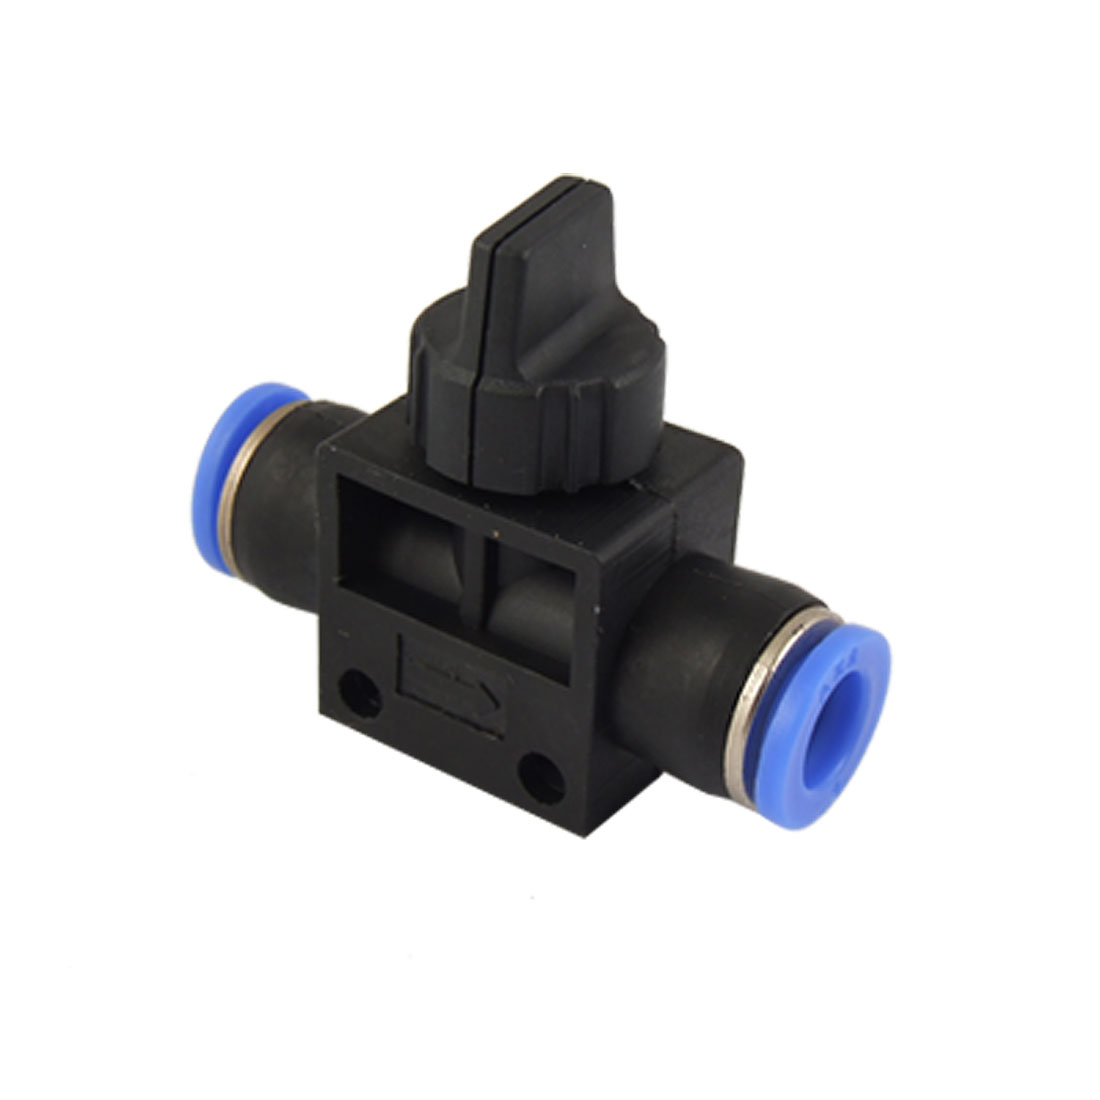 5 Pcs 8mm One Touch Tube Pneumatic Fitting Hand Control Valve